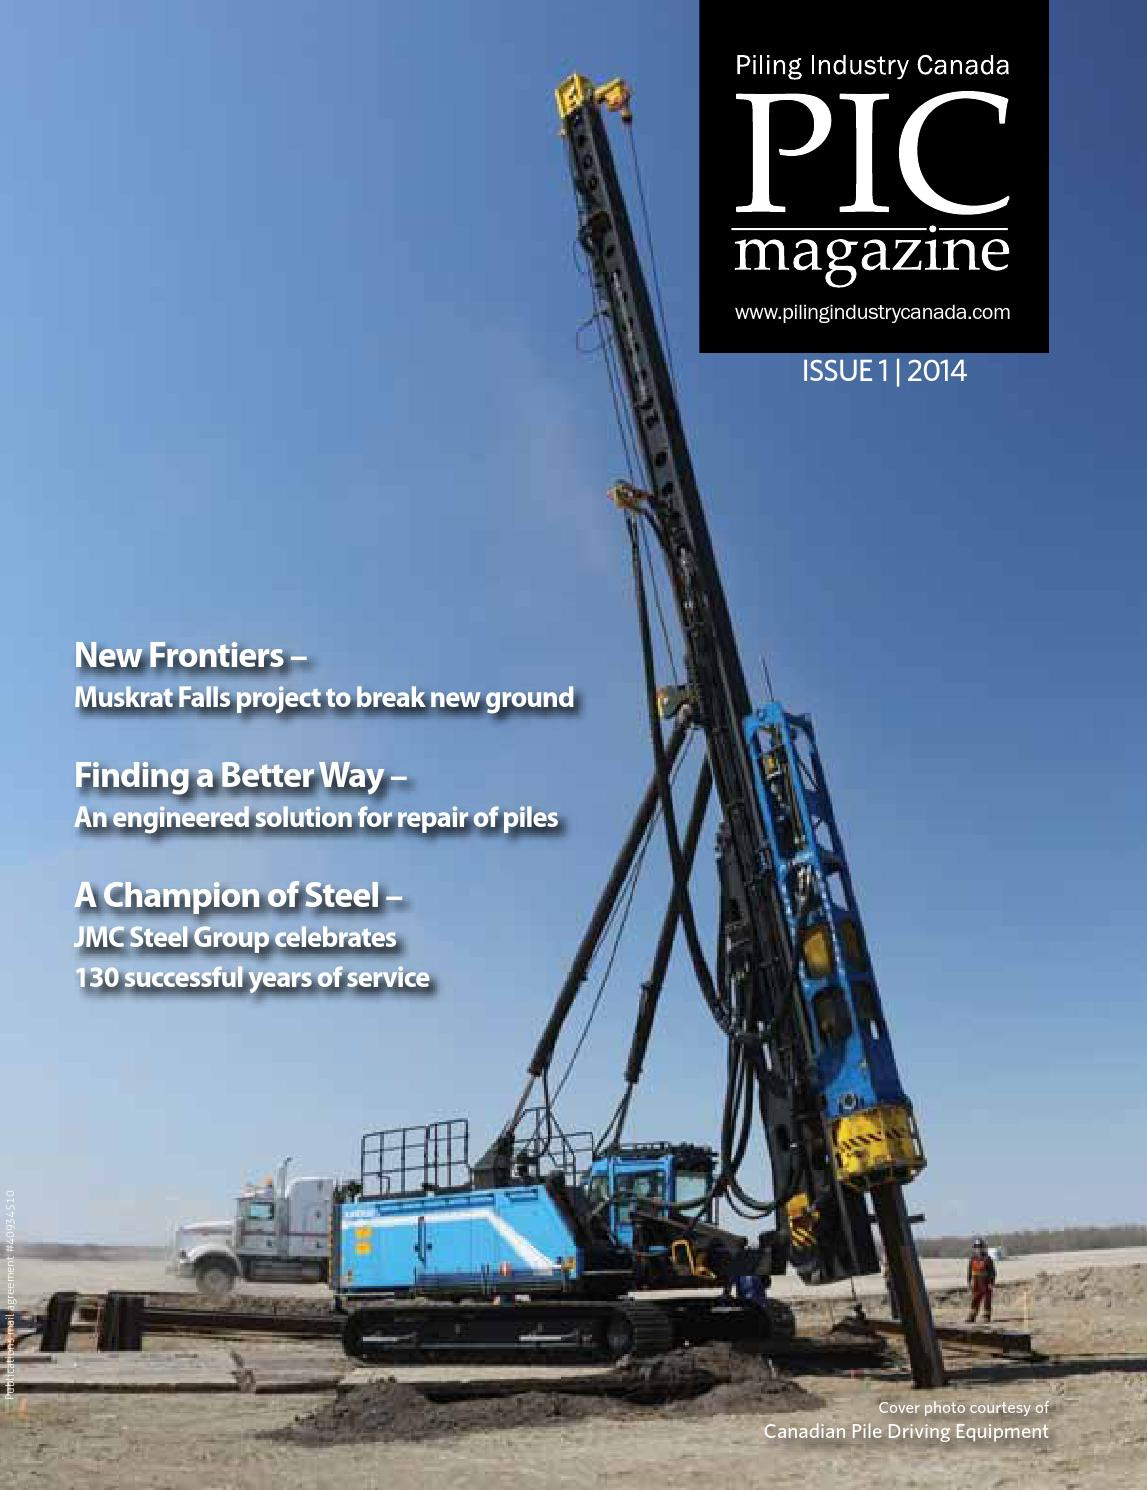 Piling Industry Canada Issue 1, 2014 by DEL Communications